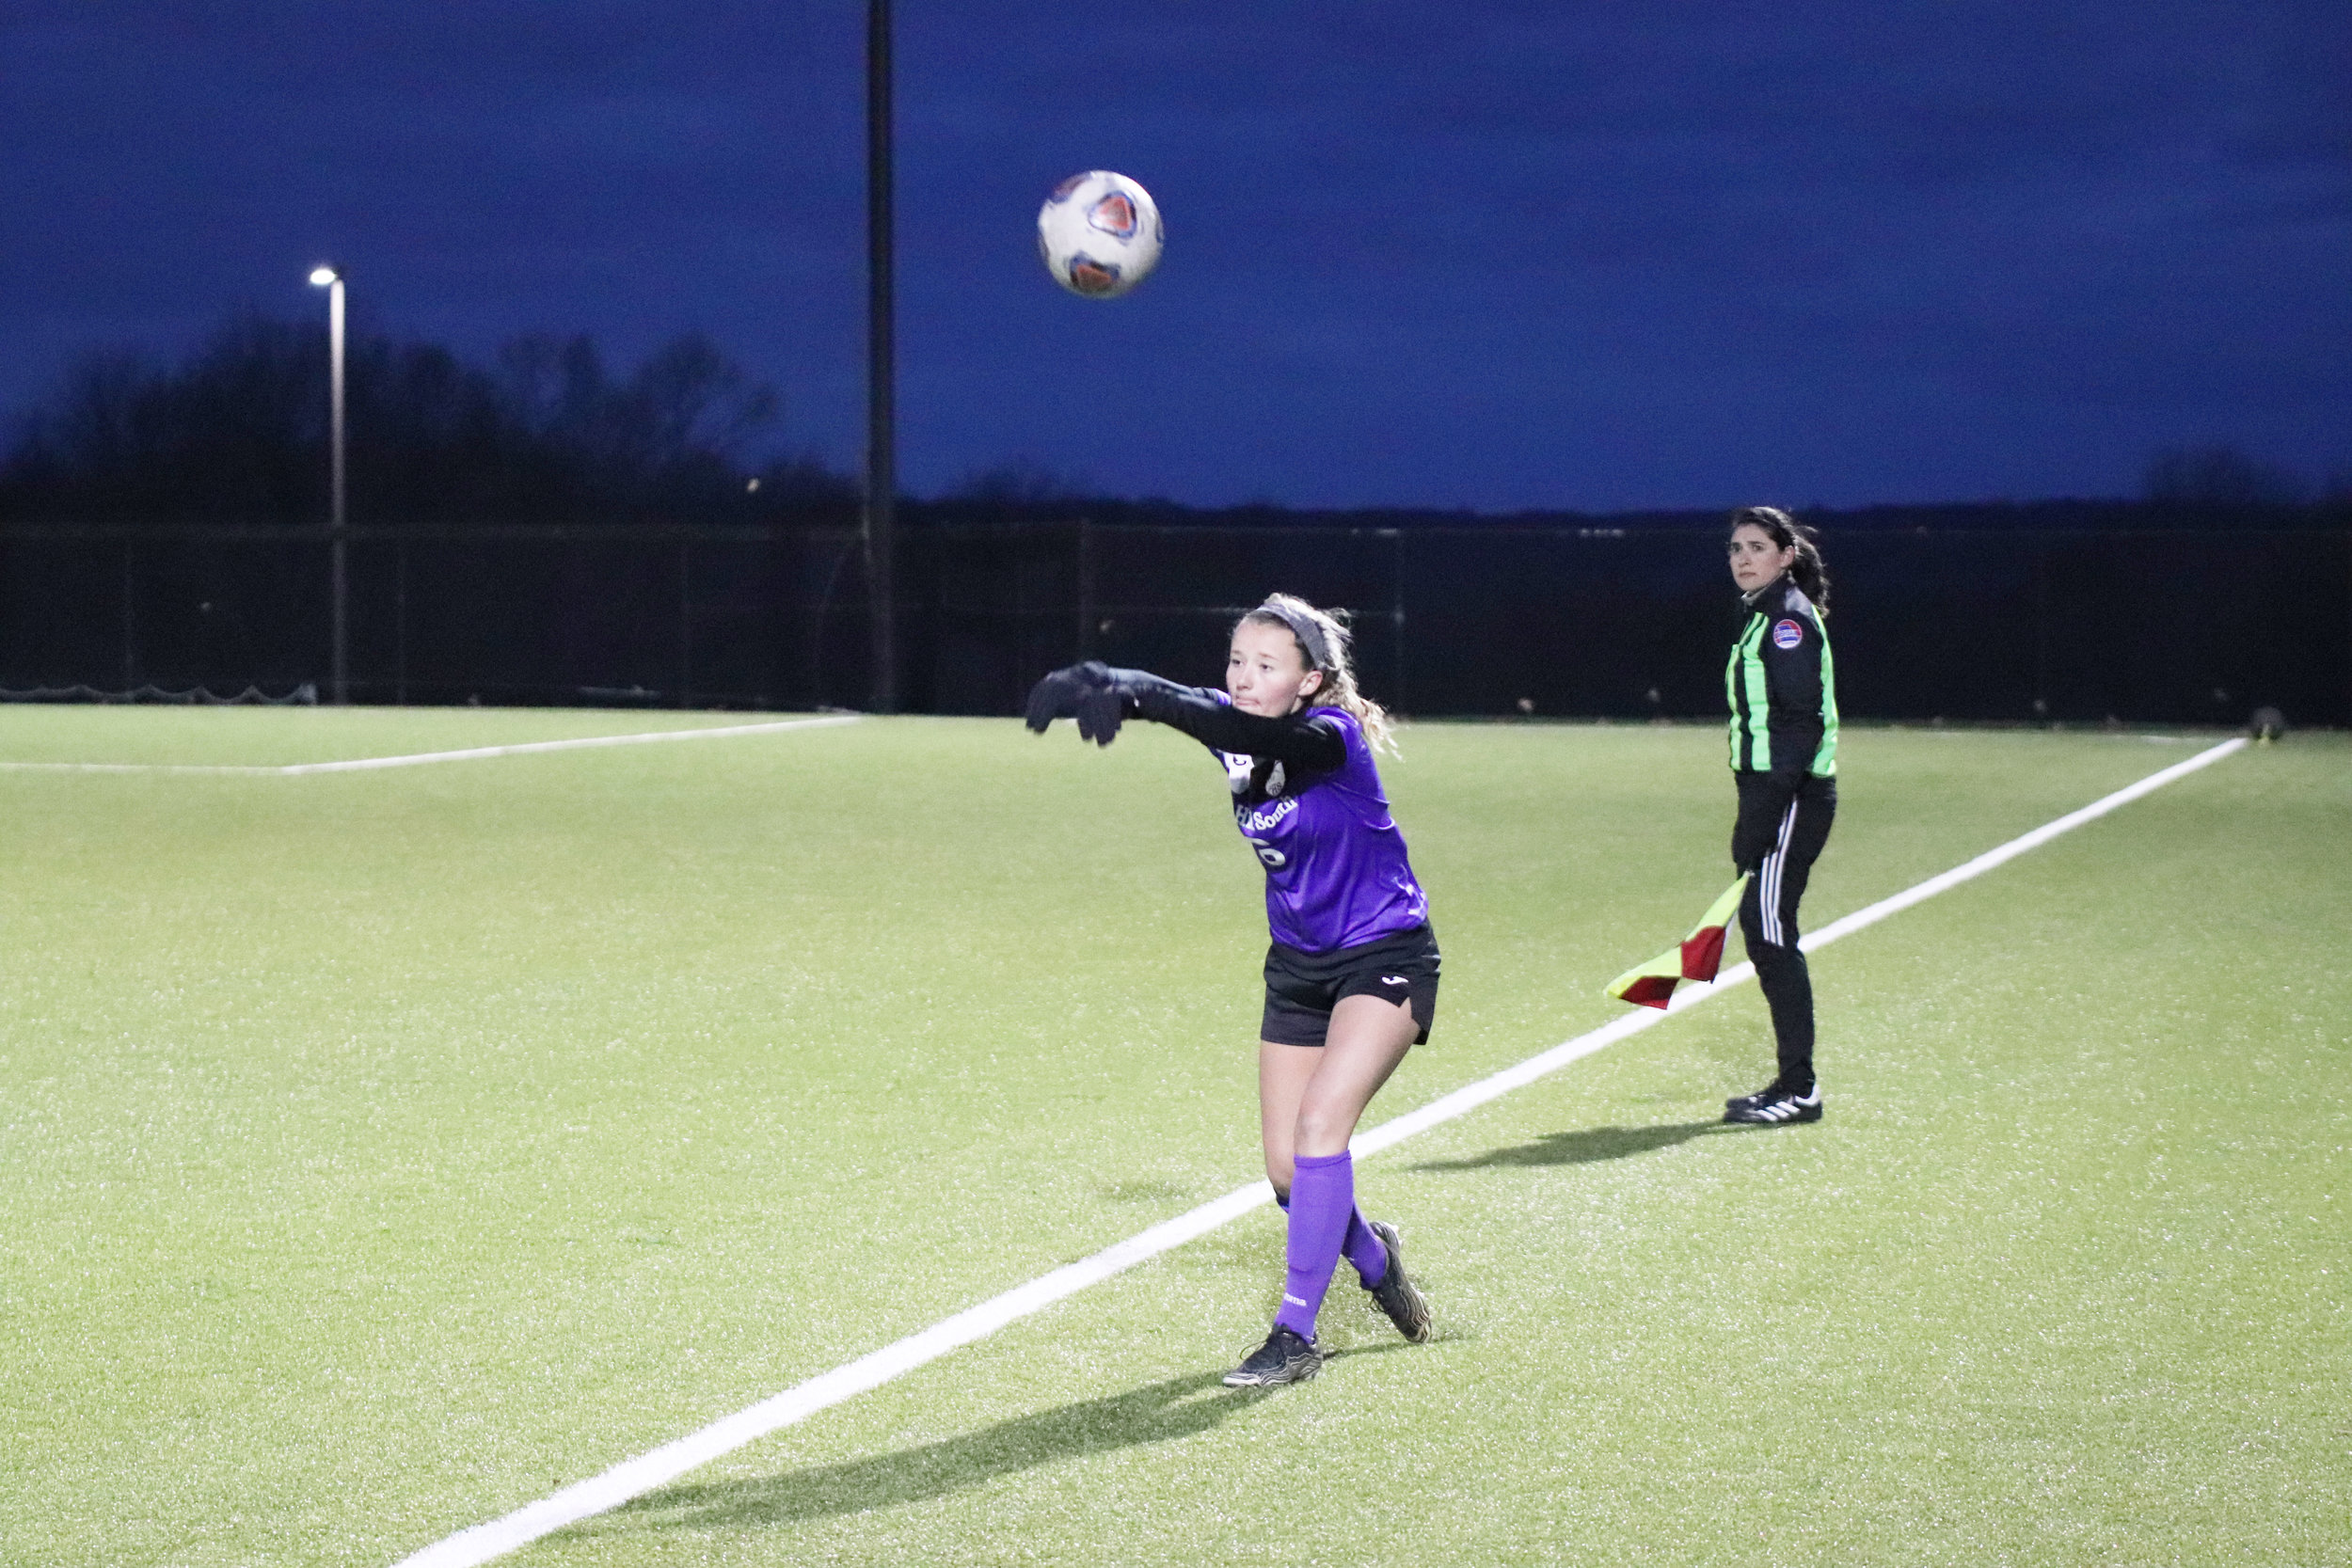 CODY THORN/Citizen photo  Park Hill South's Payton Miller handles a throw-in against Truman on Thursday, April 11 at the Park Hill School District Soccer Complex in Riverside.